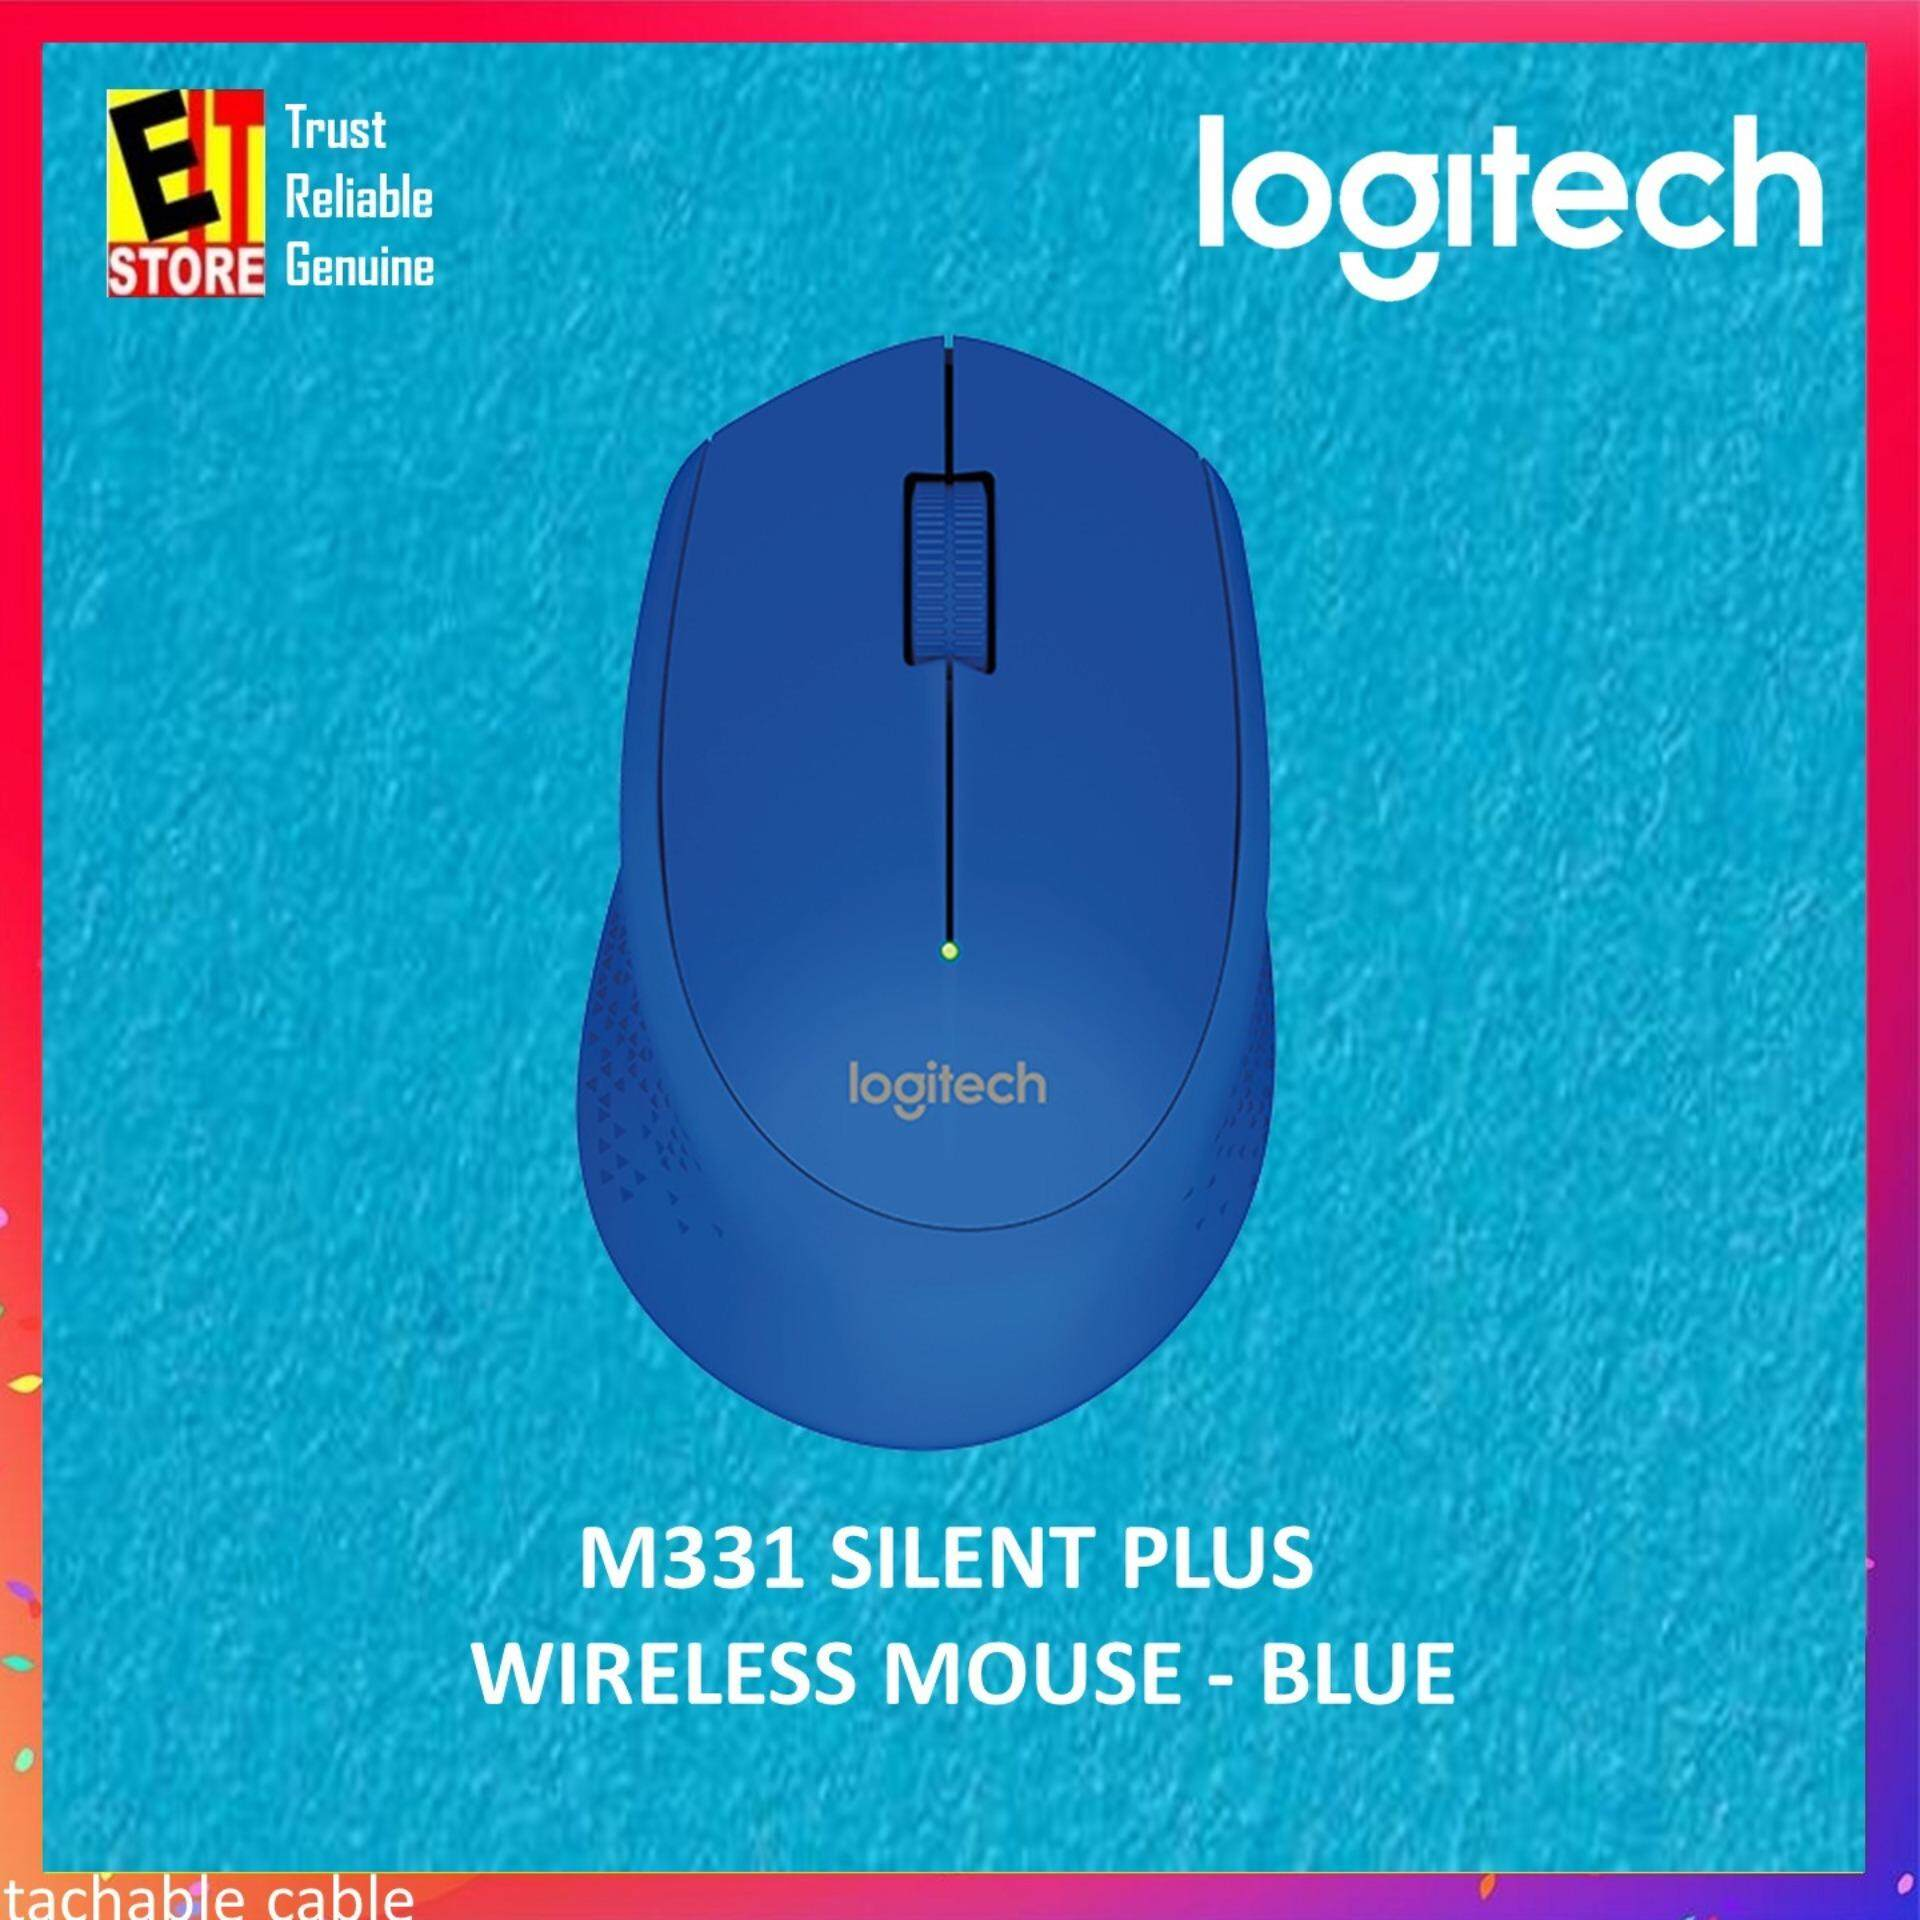 Logitech M331 Silent Plus Wireless Mouse - Blue Malaysia